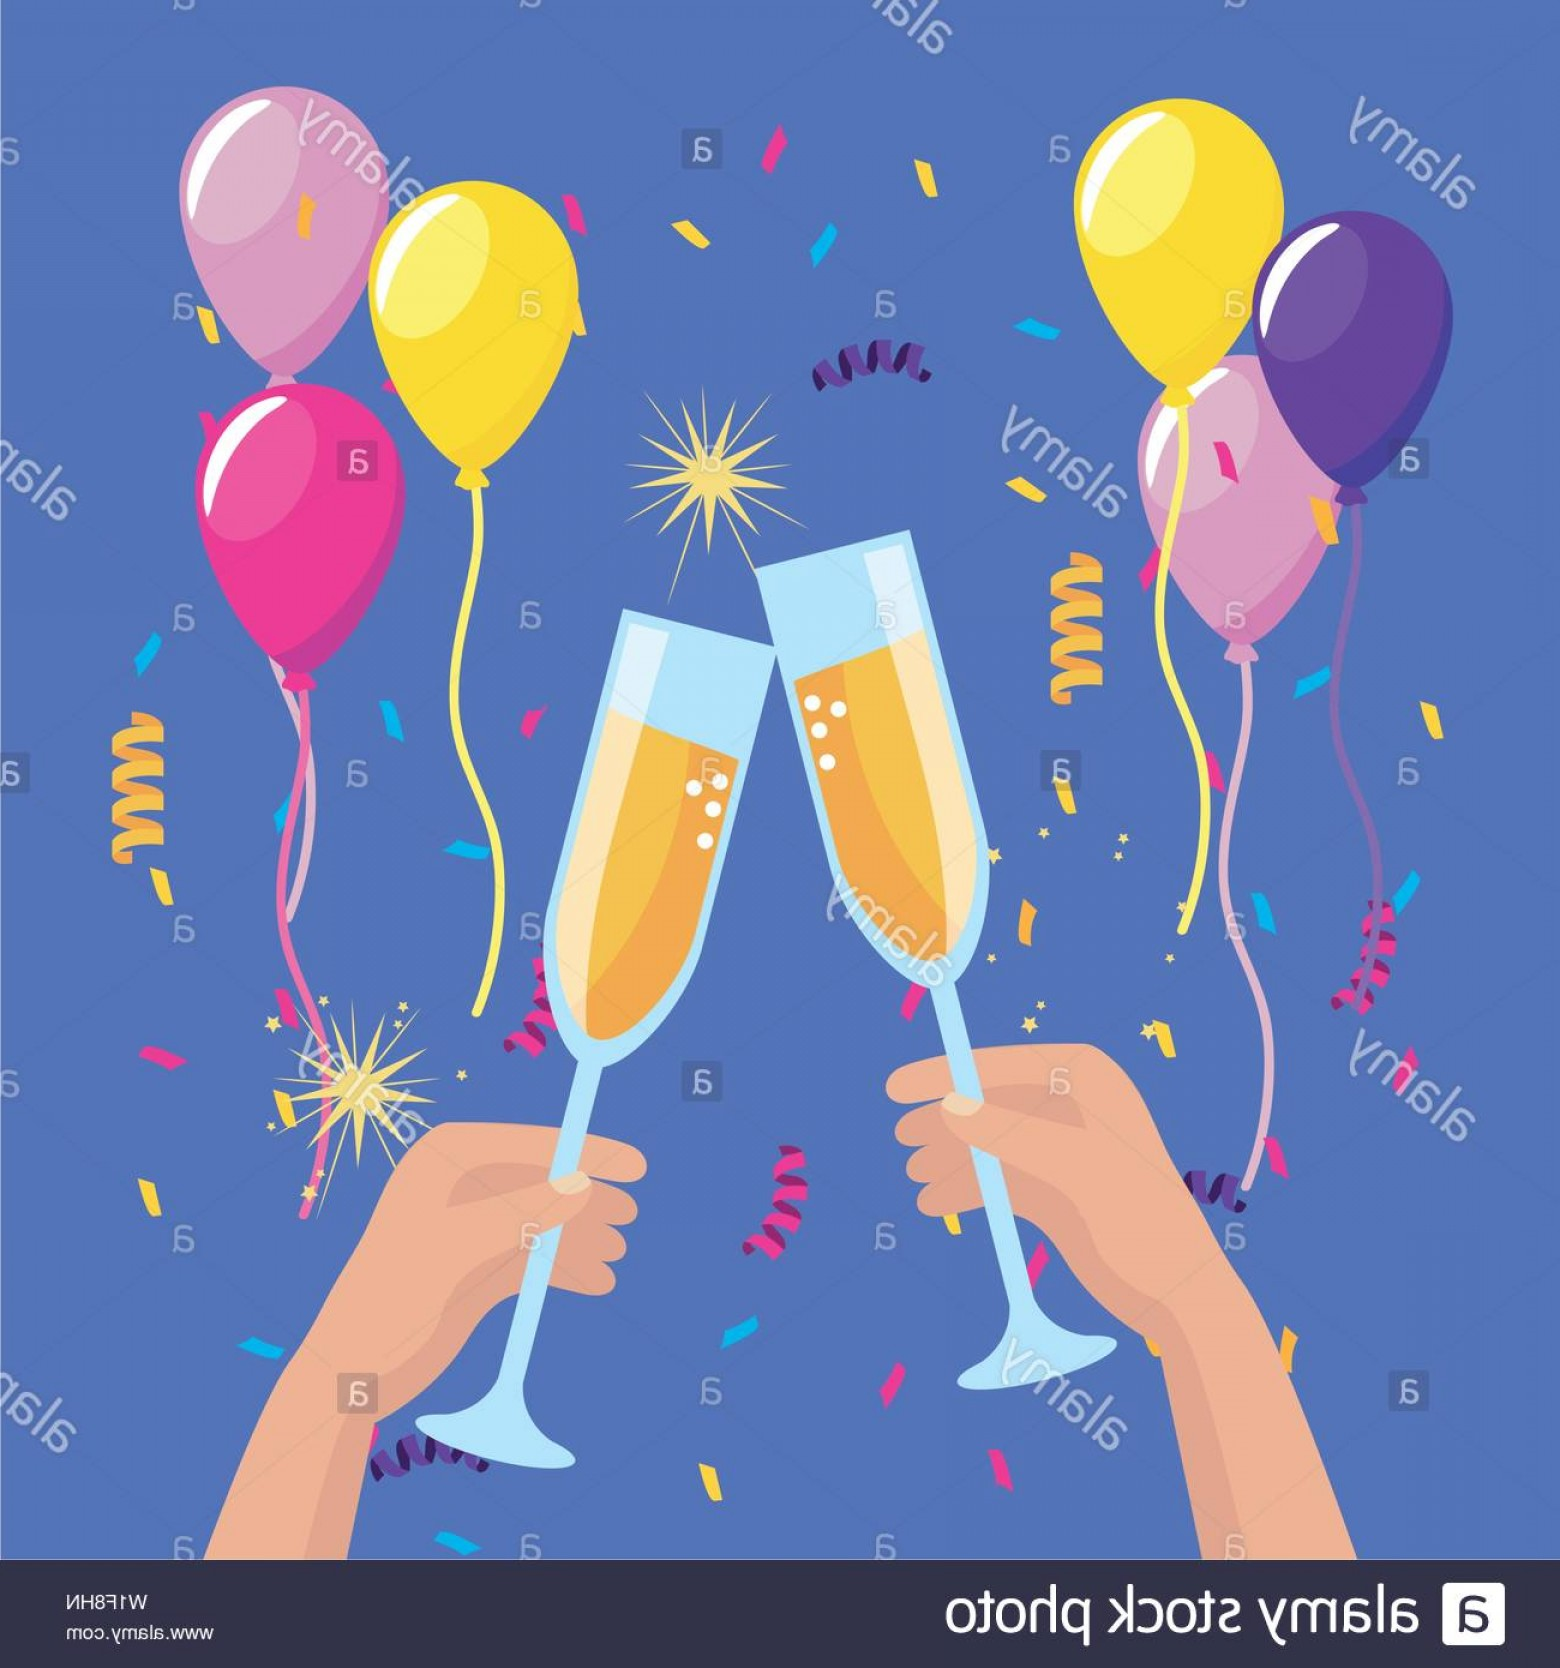 Vector Champagne Party: Hands With Champagne Glass And Balloons With Confetti To Party Event Vector Illustration Image